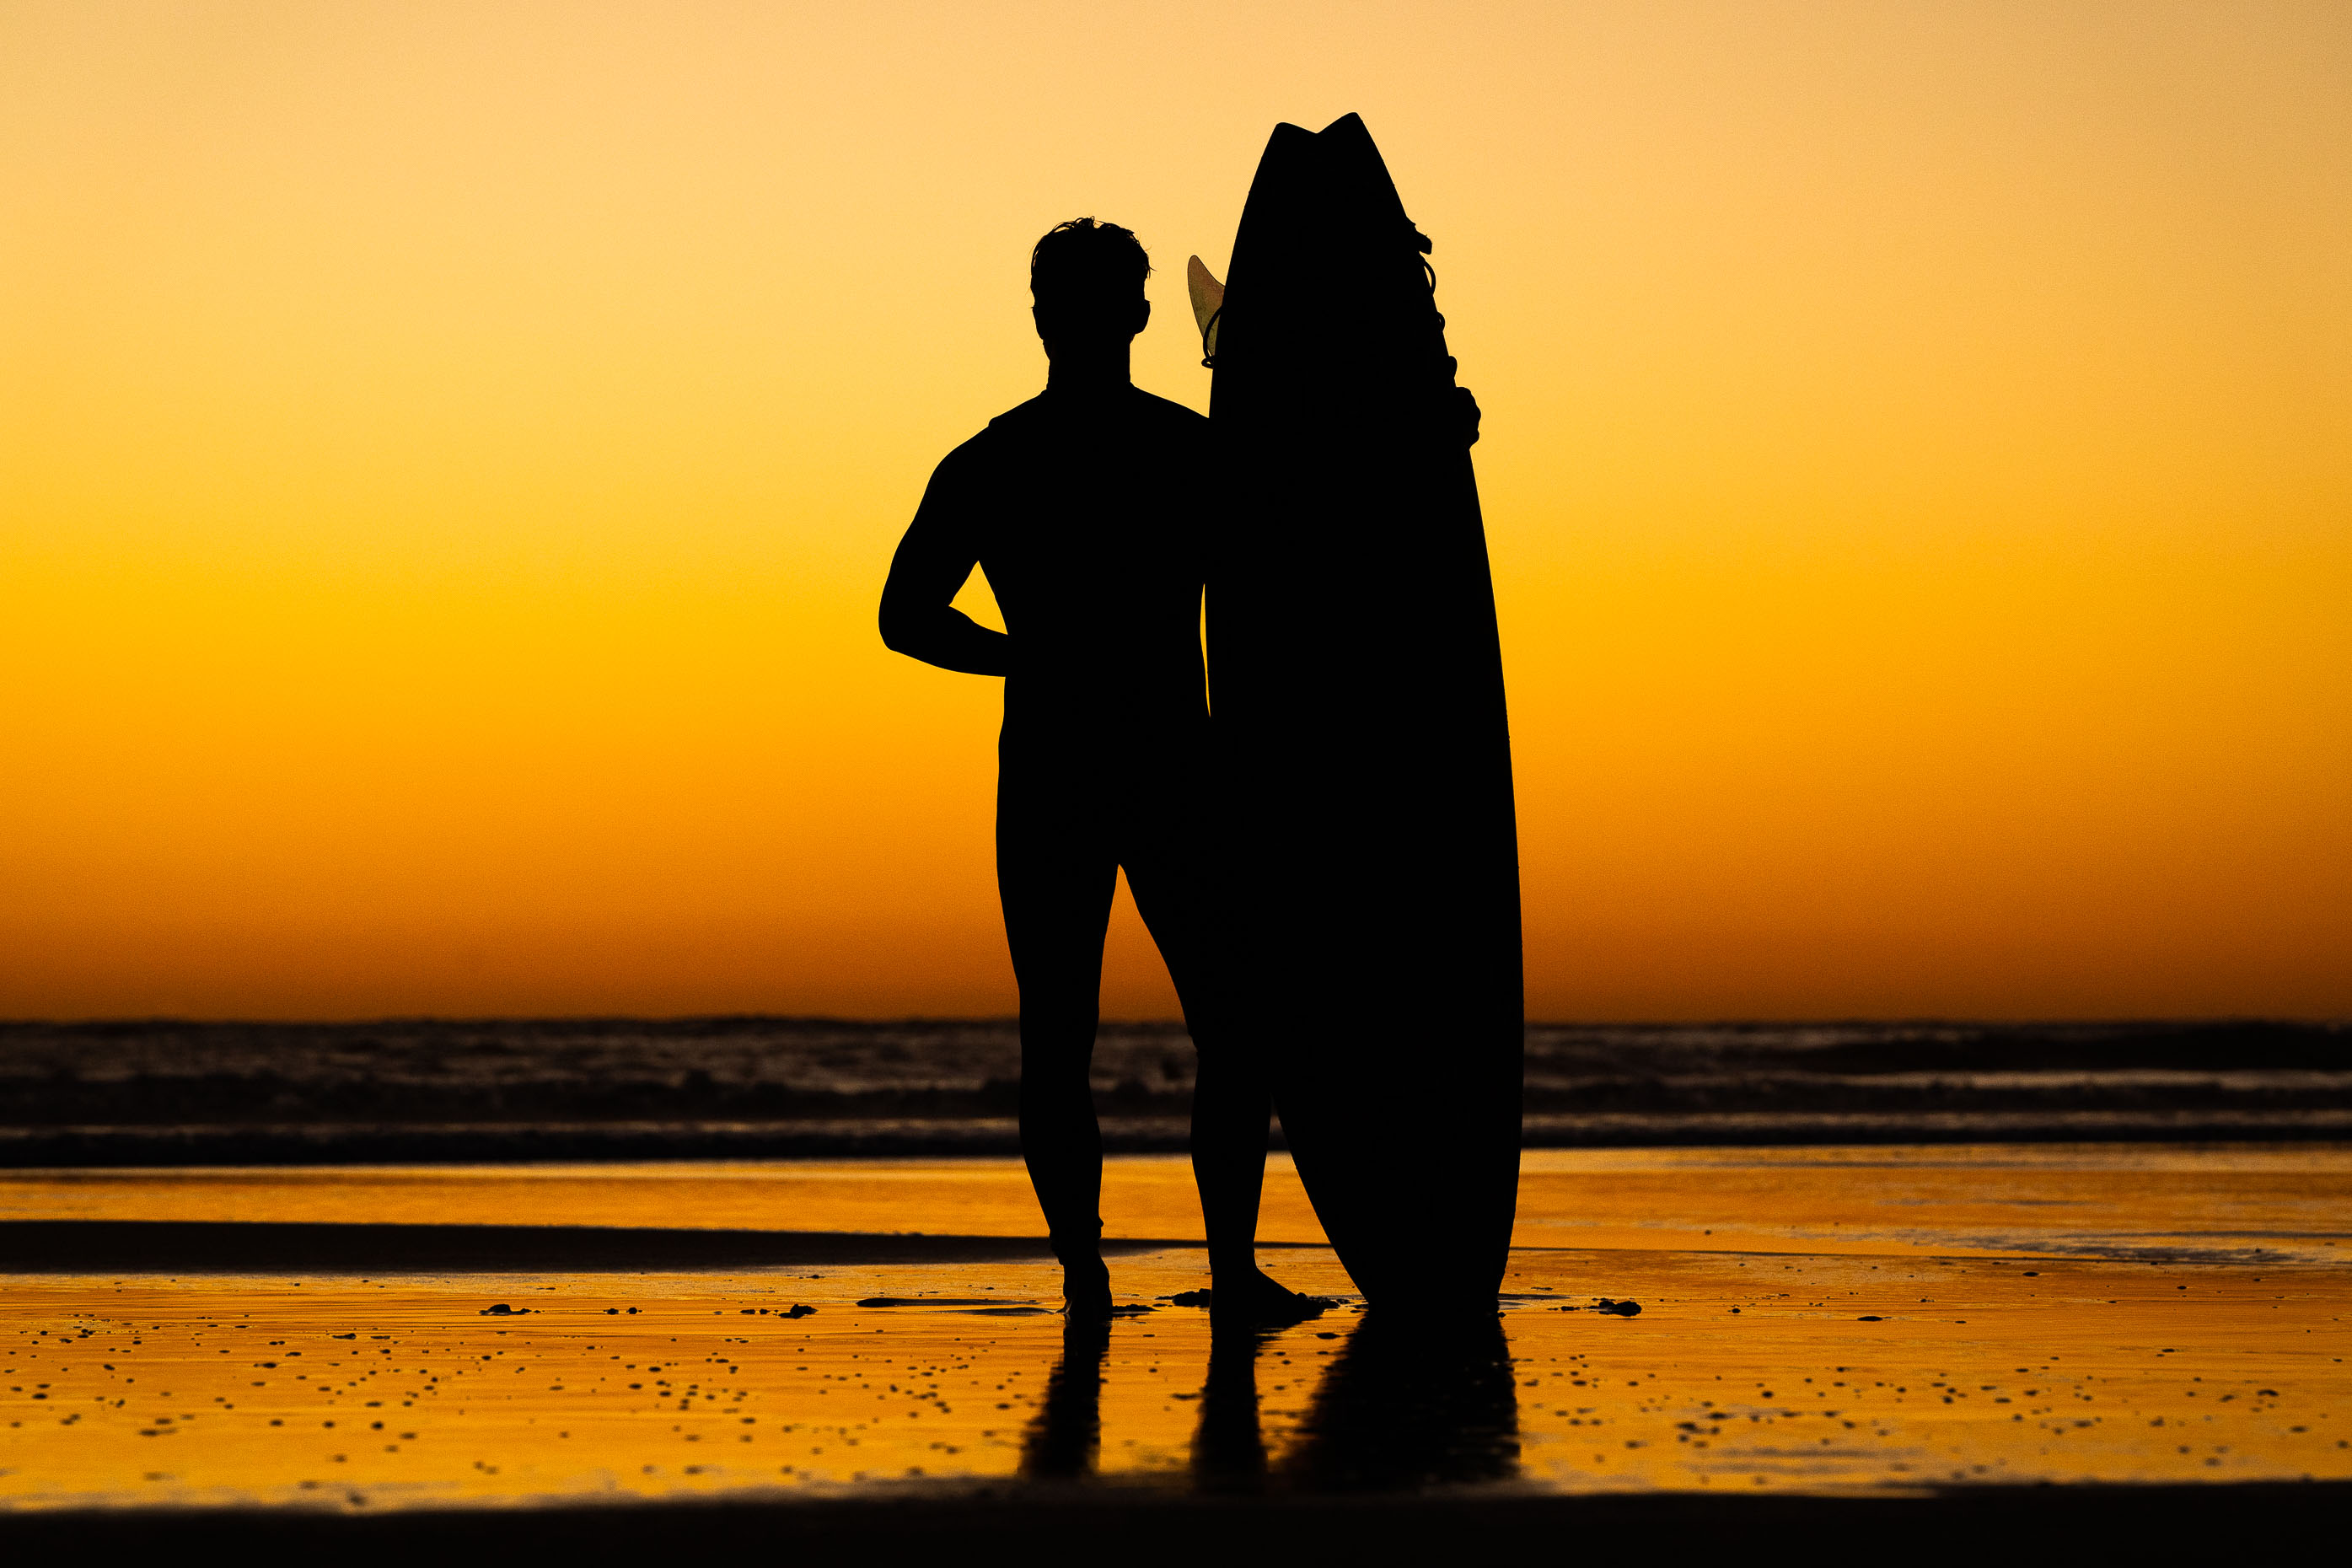 aaron-ingrao-keepers-of-the-craft-tim-bessell-surfboards-san-diego-sunset-beach-waves